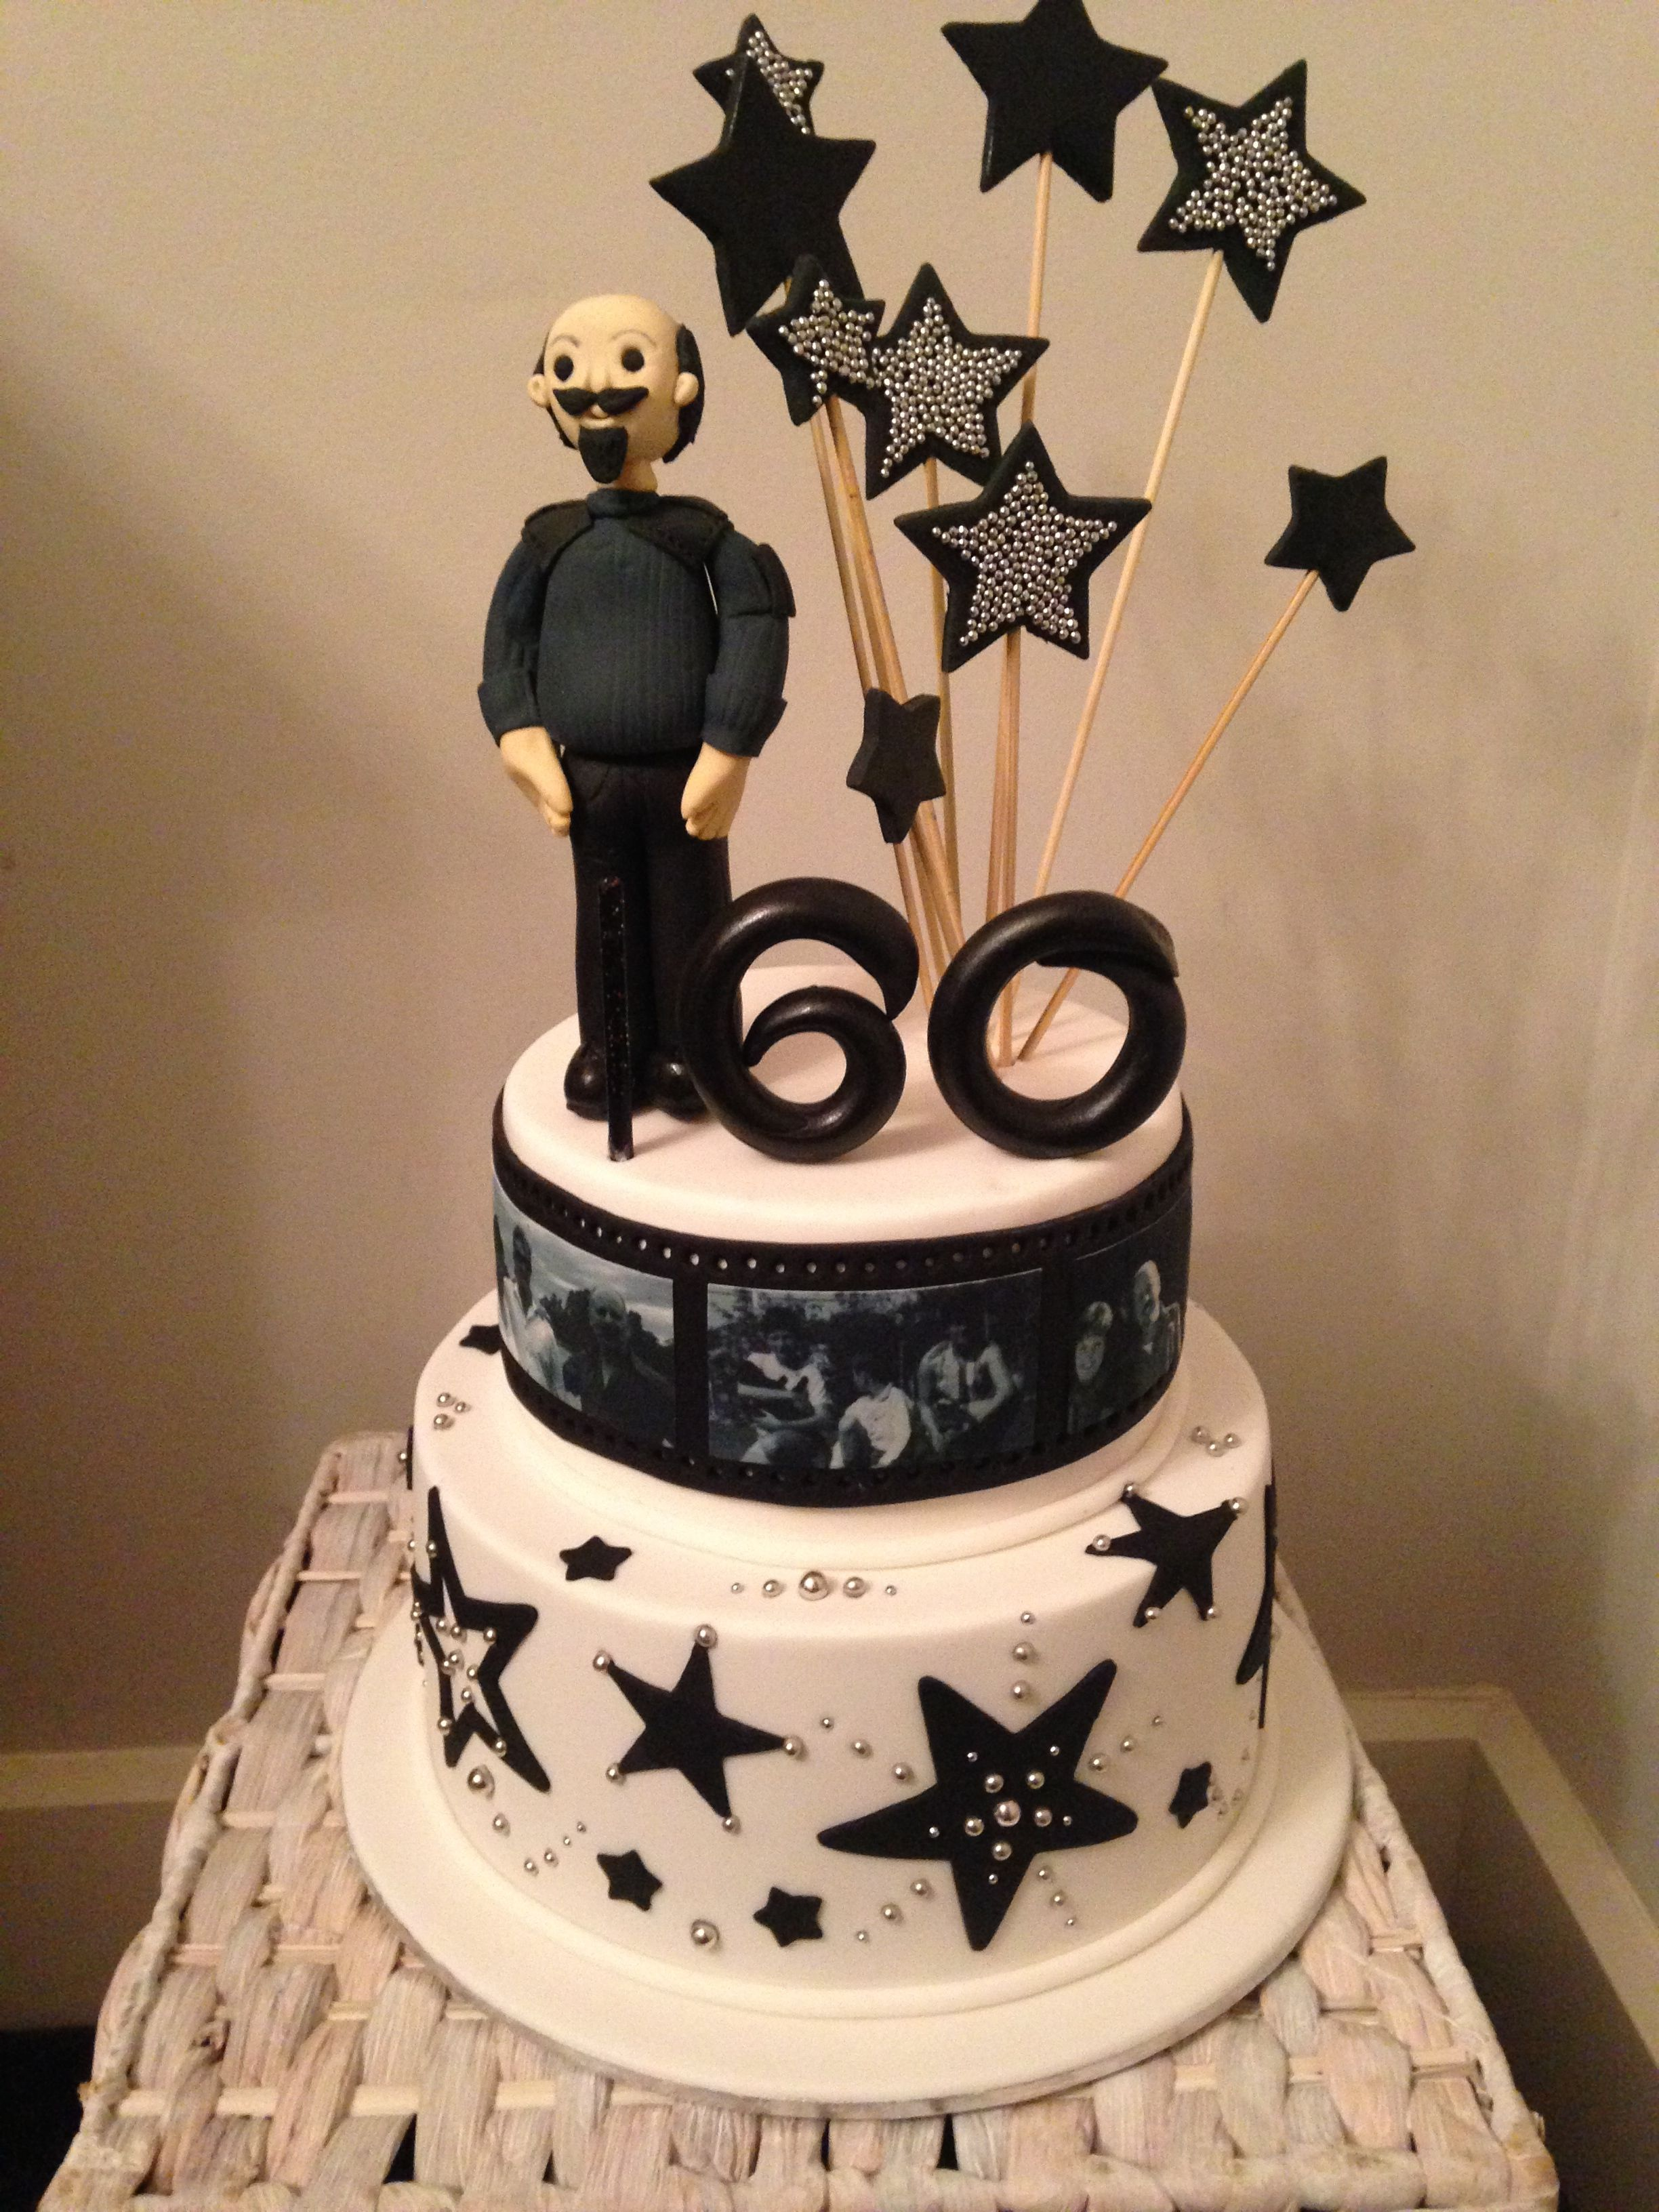 Man 60th Birthday Cake Black And White